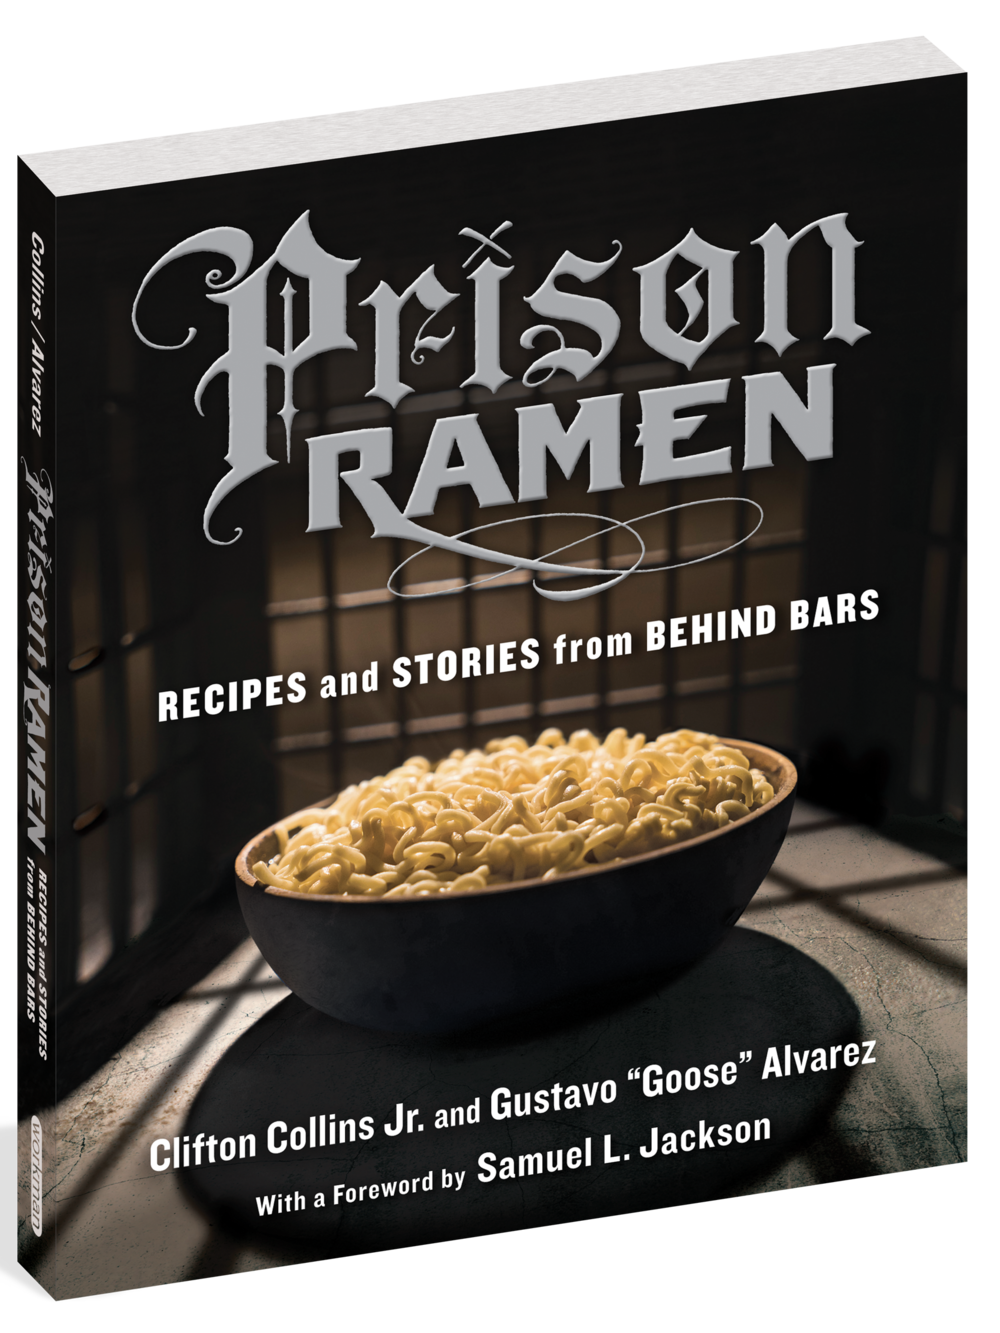 Prison Ramen: Recipes and Stories from Behind Bars by Actor Clifton Collins, $8